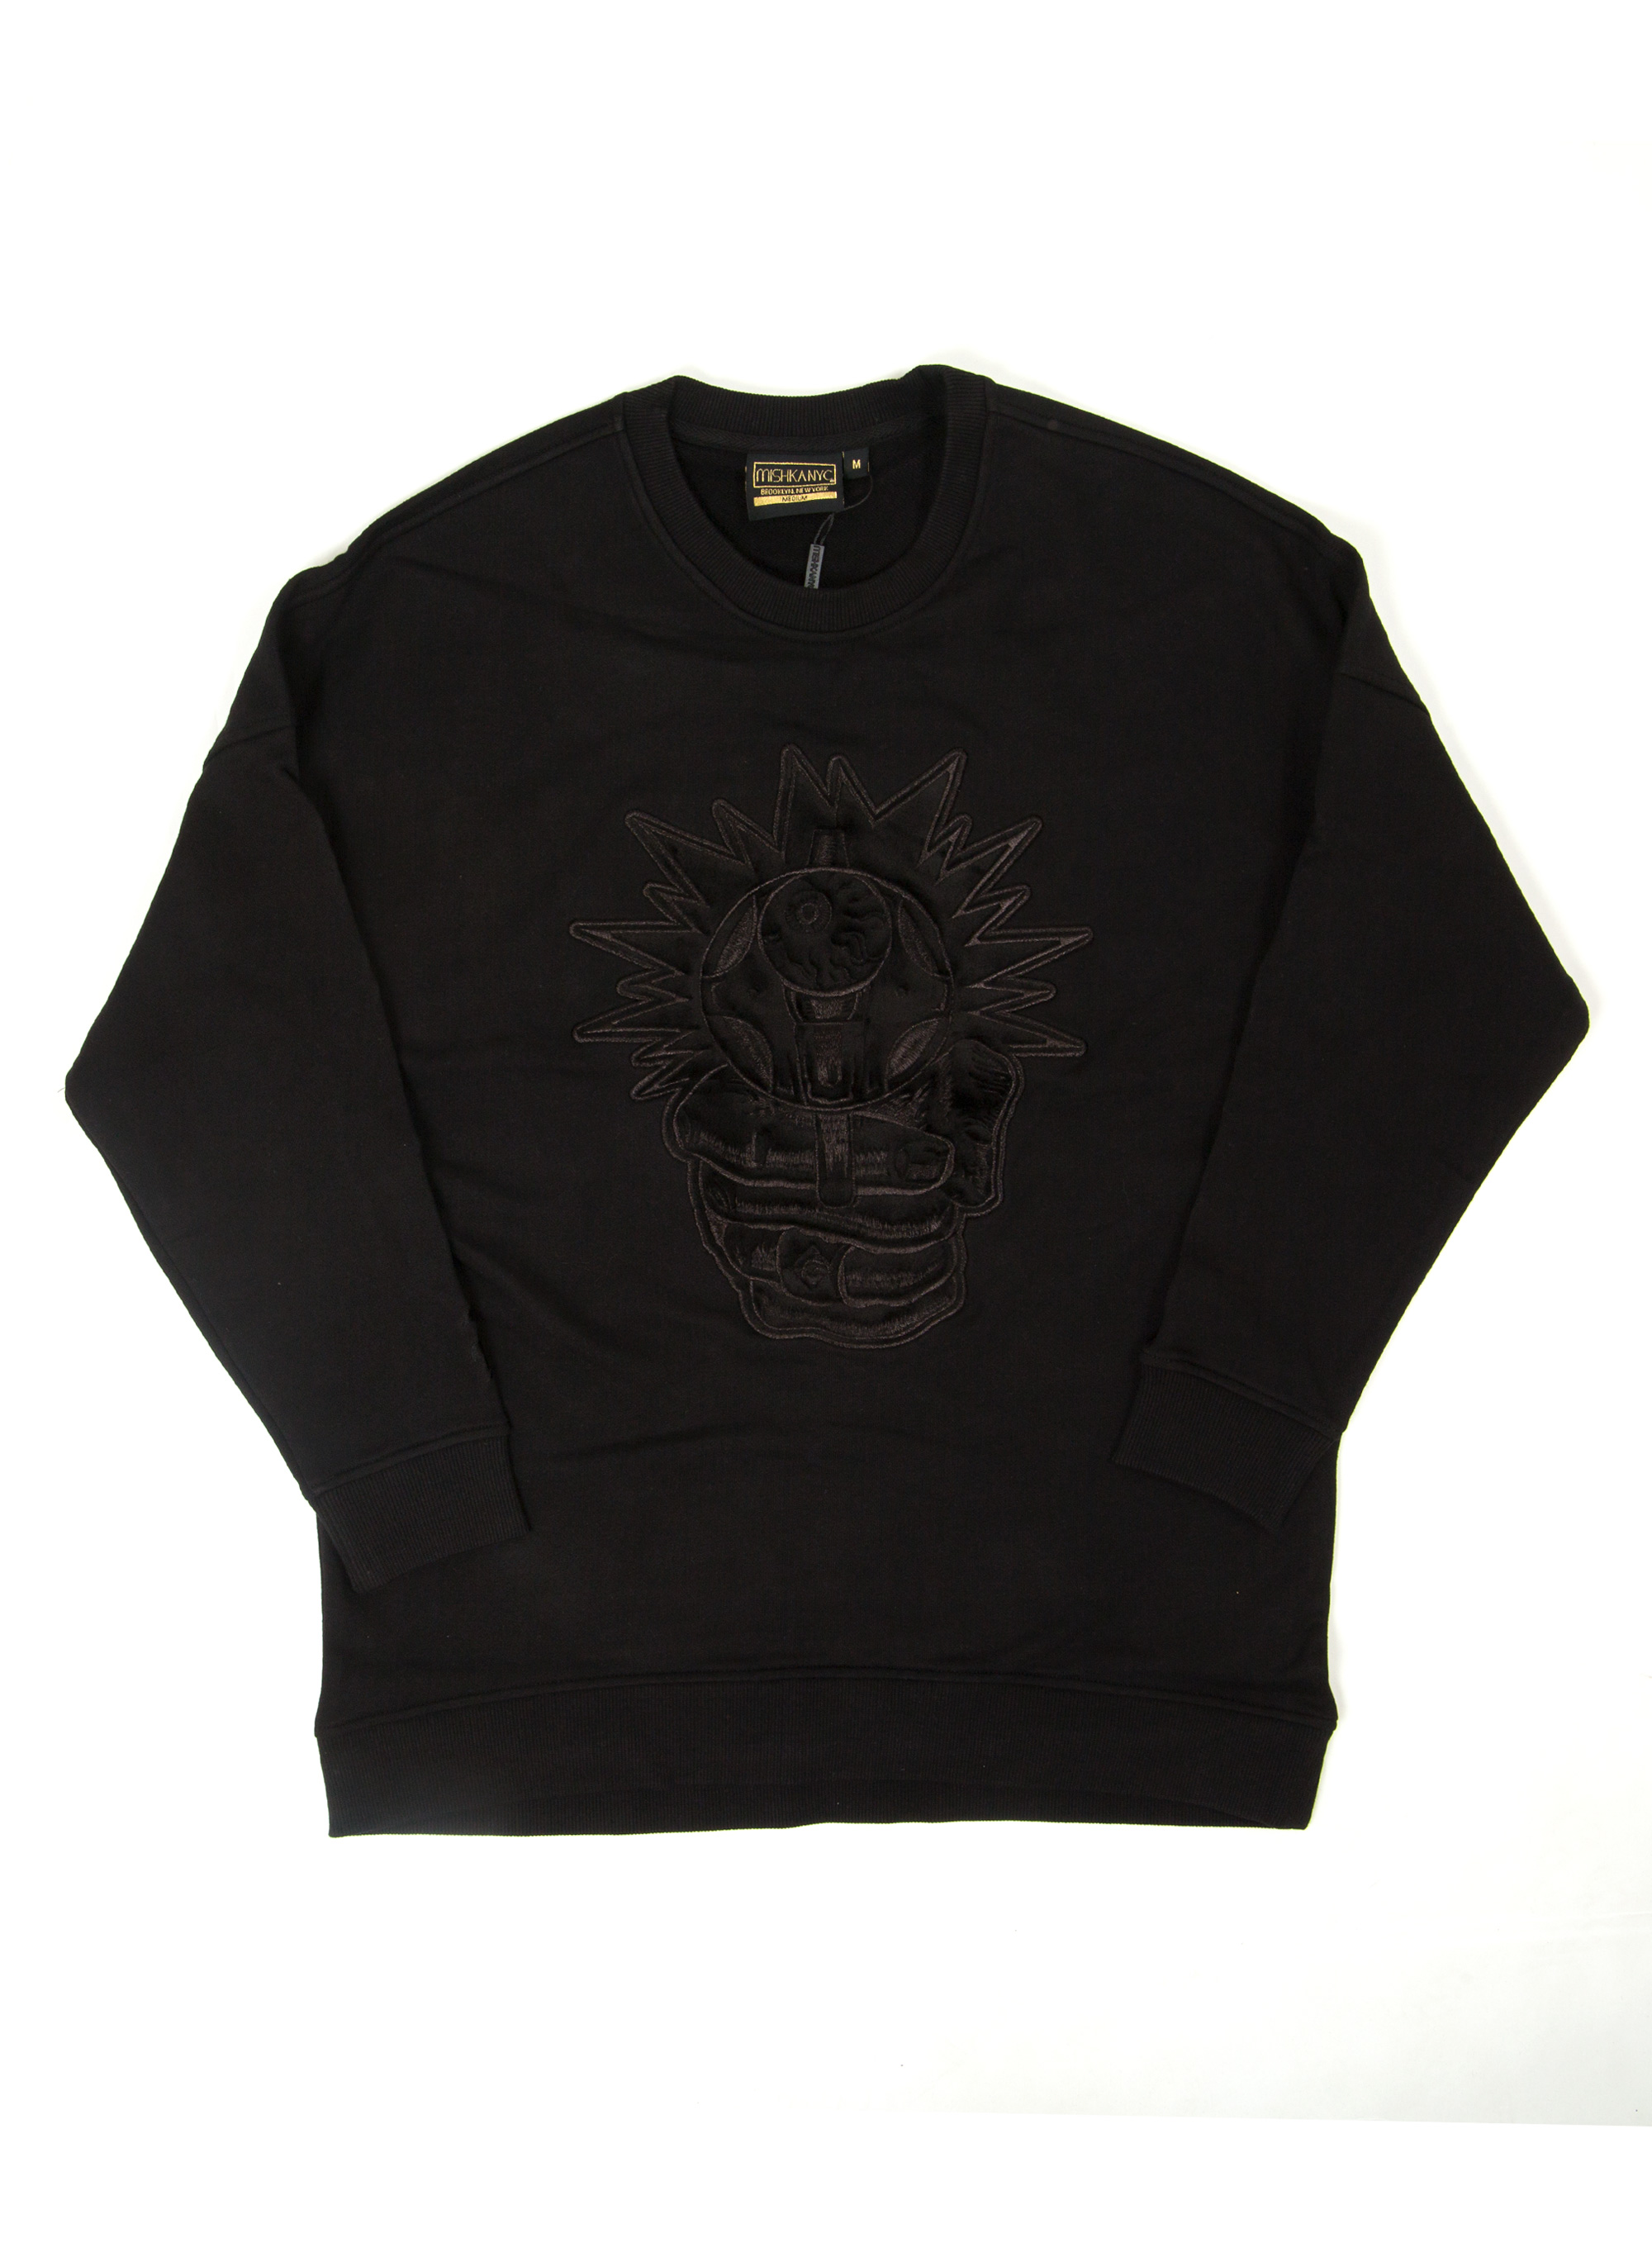 Lamour On Sight Crewneck